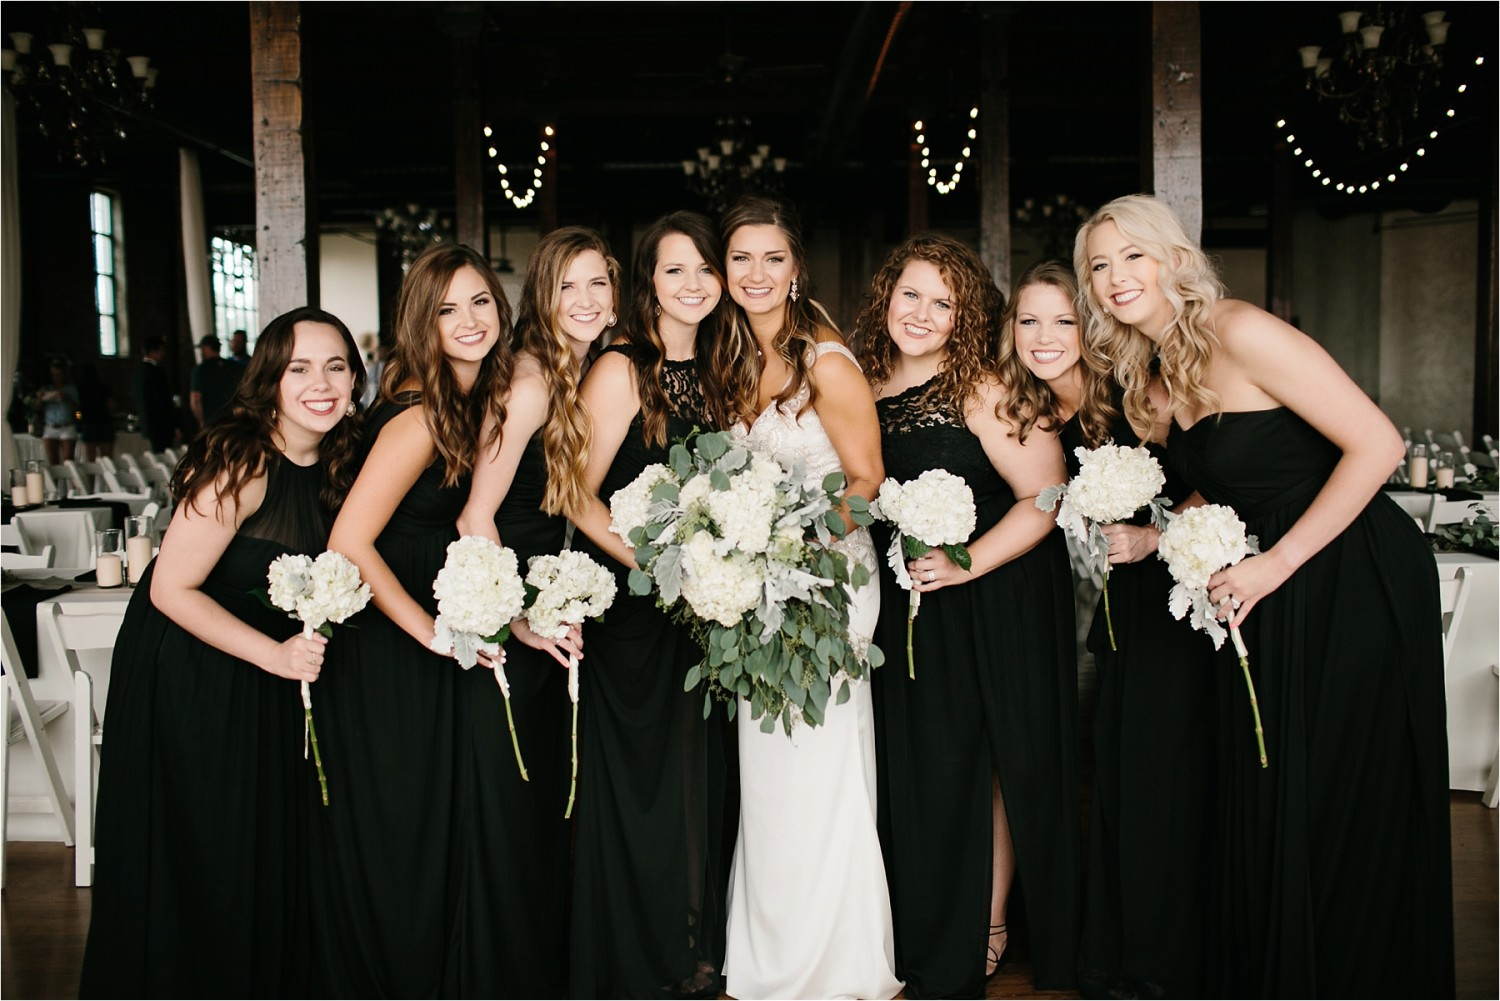 Holly + Jordan __ a black, gold, and greenery organic wedding at The Phoenix Ballroom in Waco, TX by North Texas Wedding Photographer Rachel Meagan Photography __ 47